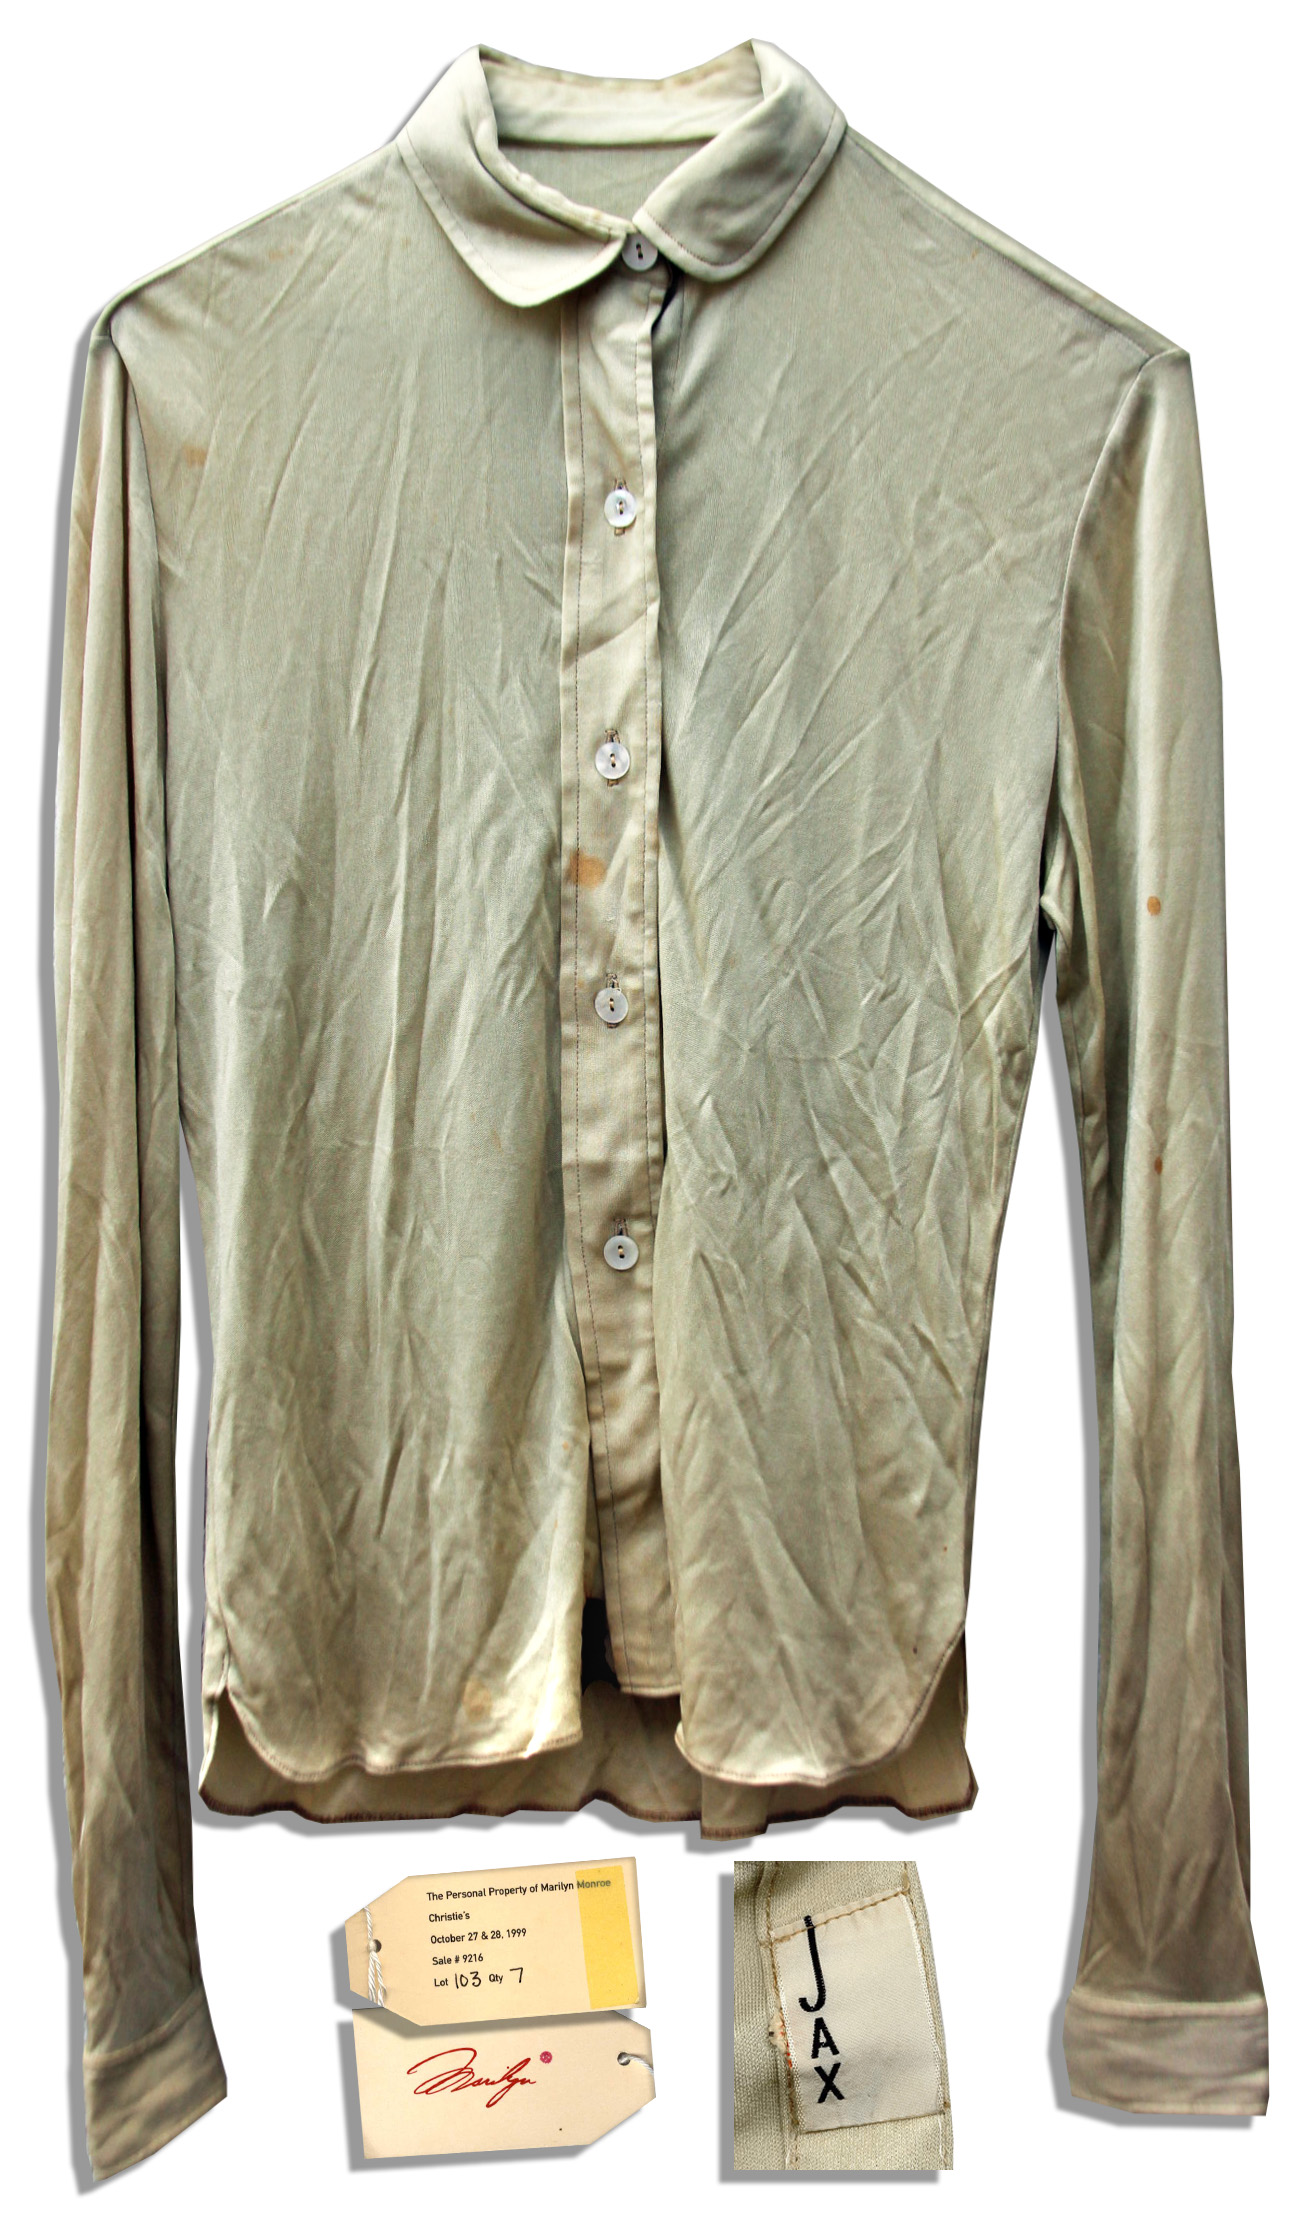 Marilyn Monroe dress auction Marilyn Monroe's Personally Owned Blouse With Provenance From Christie's